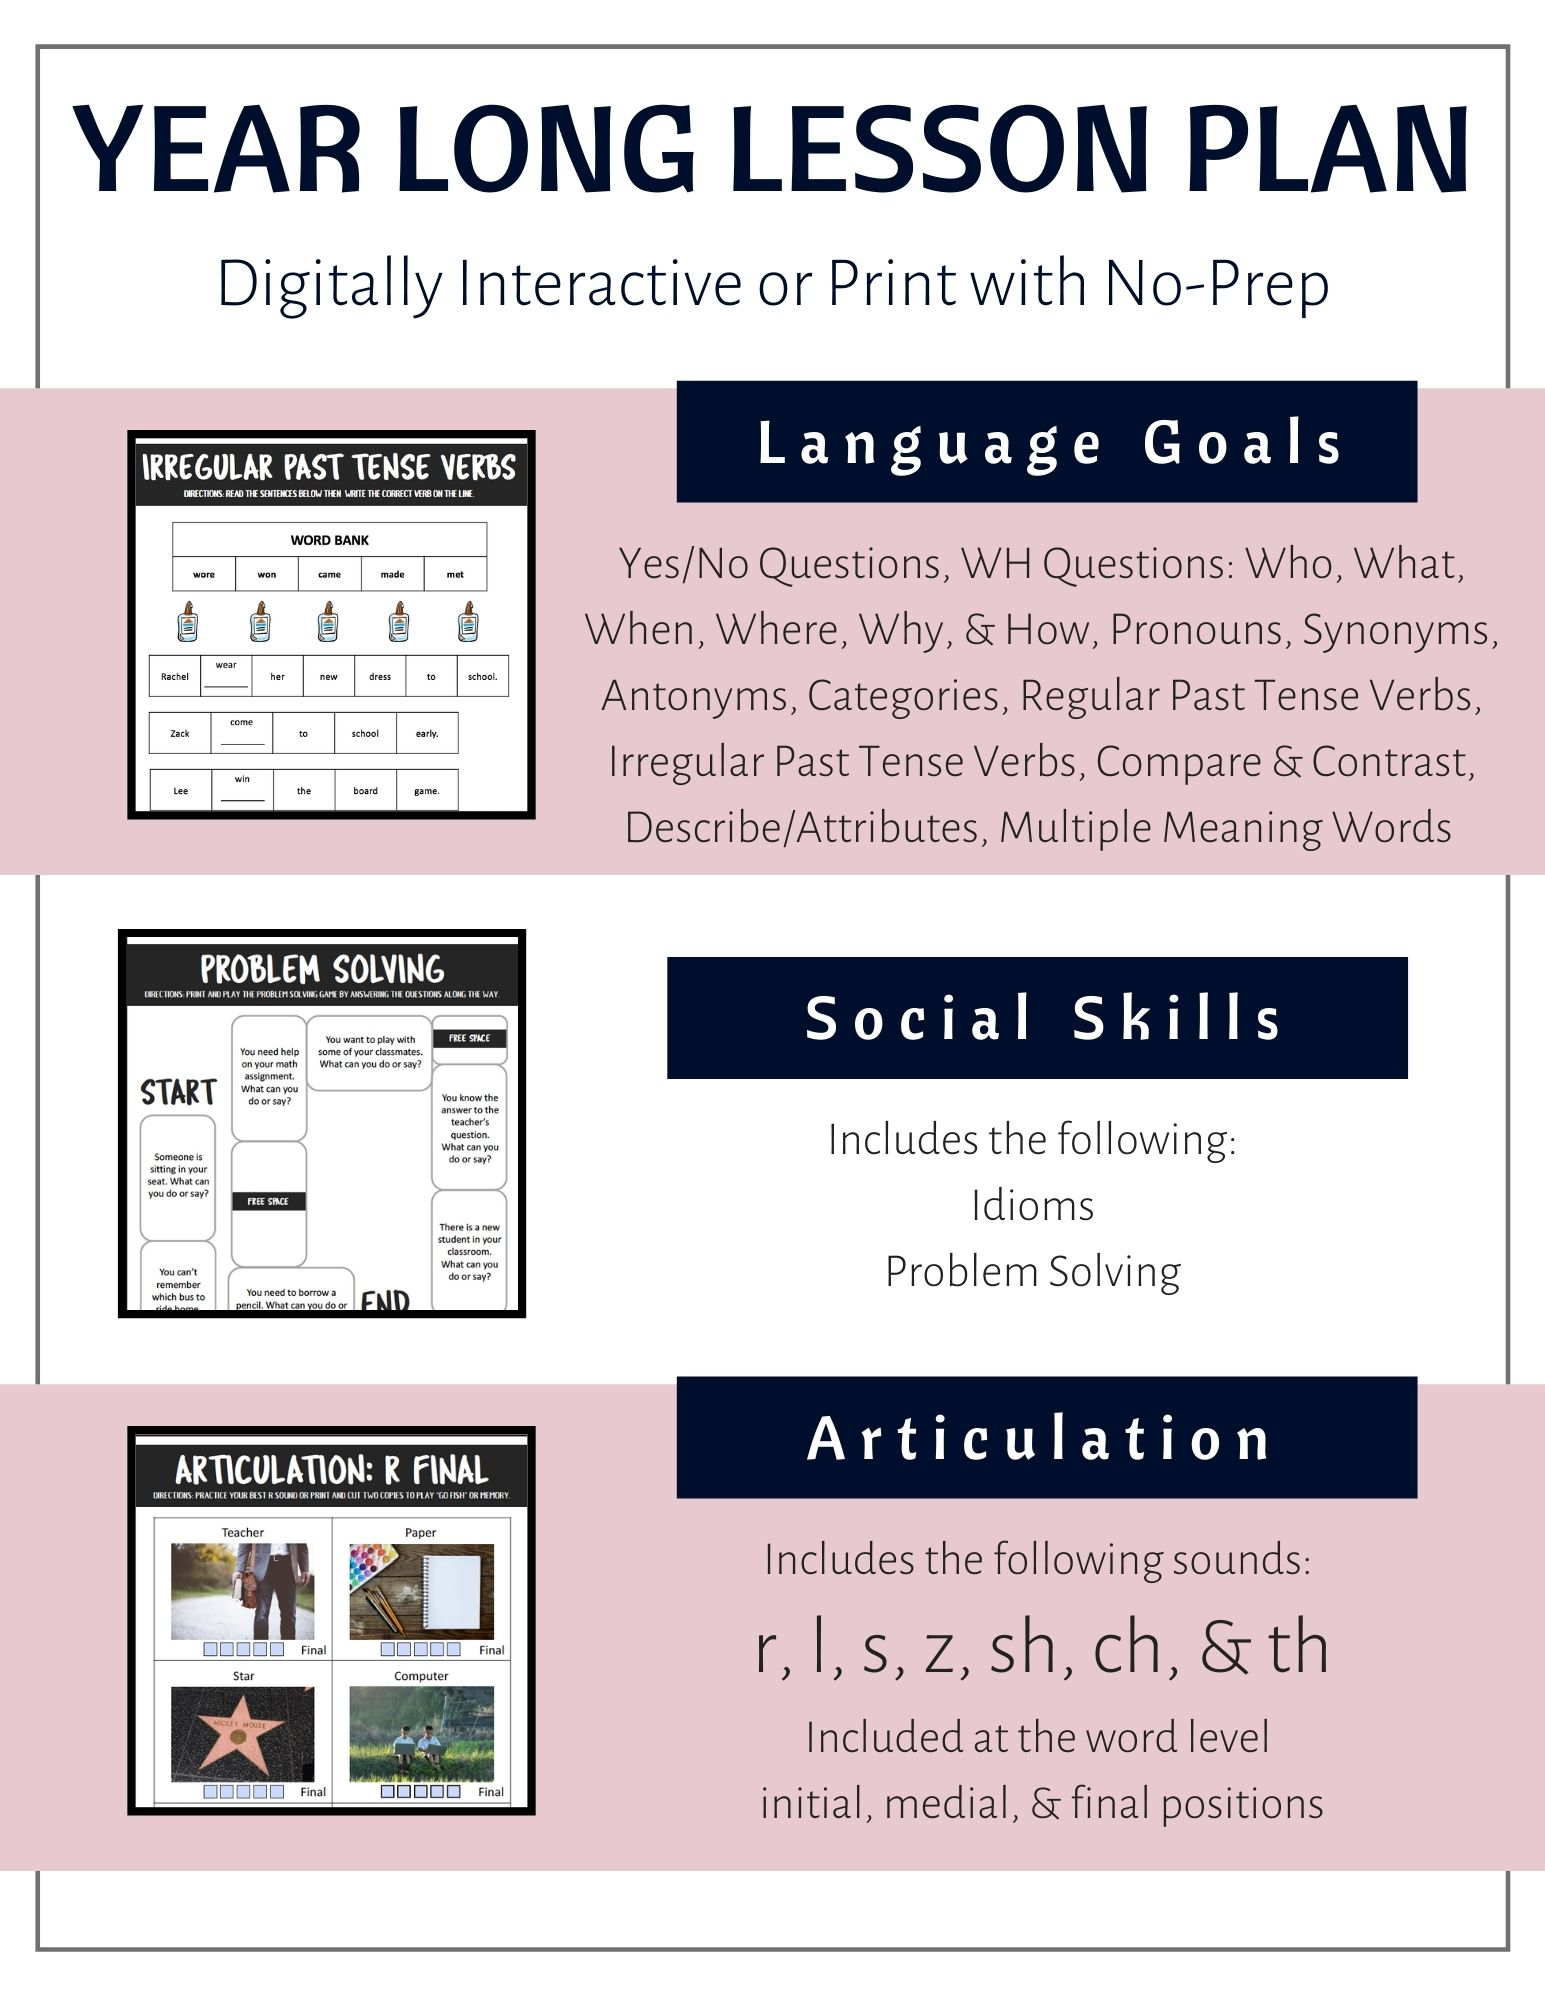 Year Long Digitally Interactive Lesson Plan For Speech